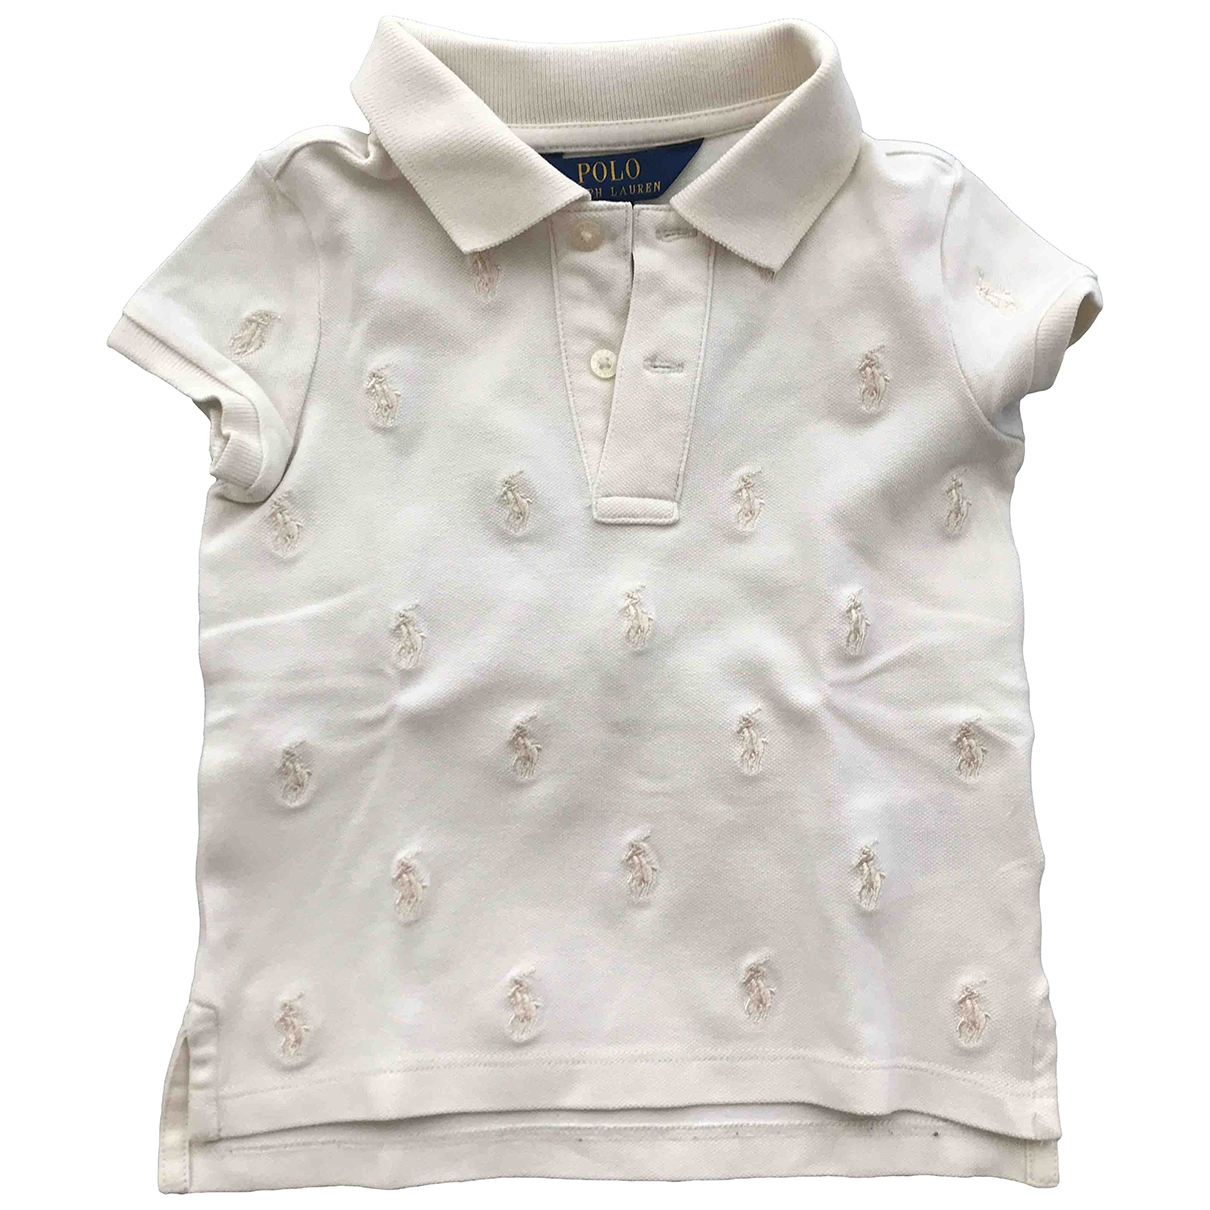 Polo Ralph Lauren \N Ecru Cotton  top for Kids 3 years - up to 98cm FR